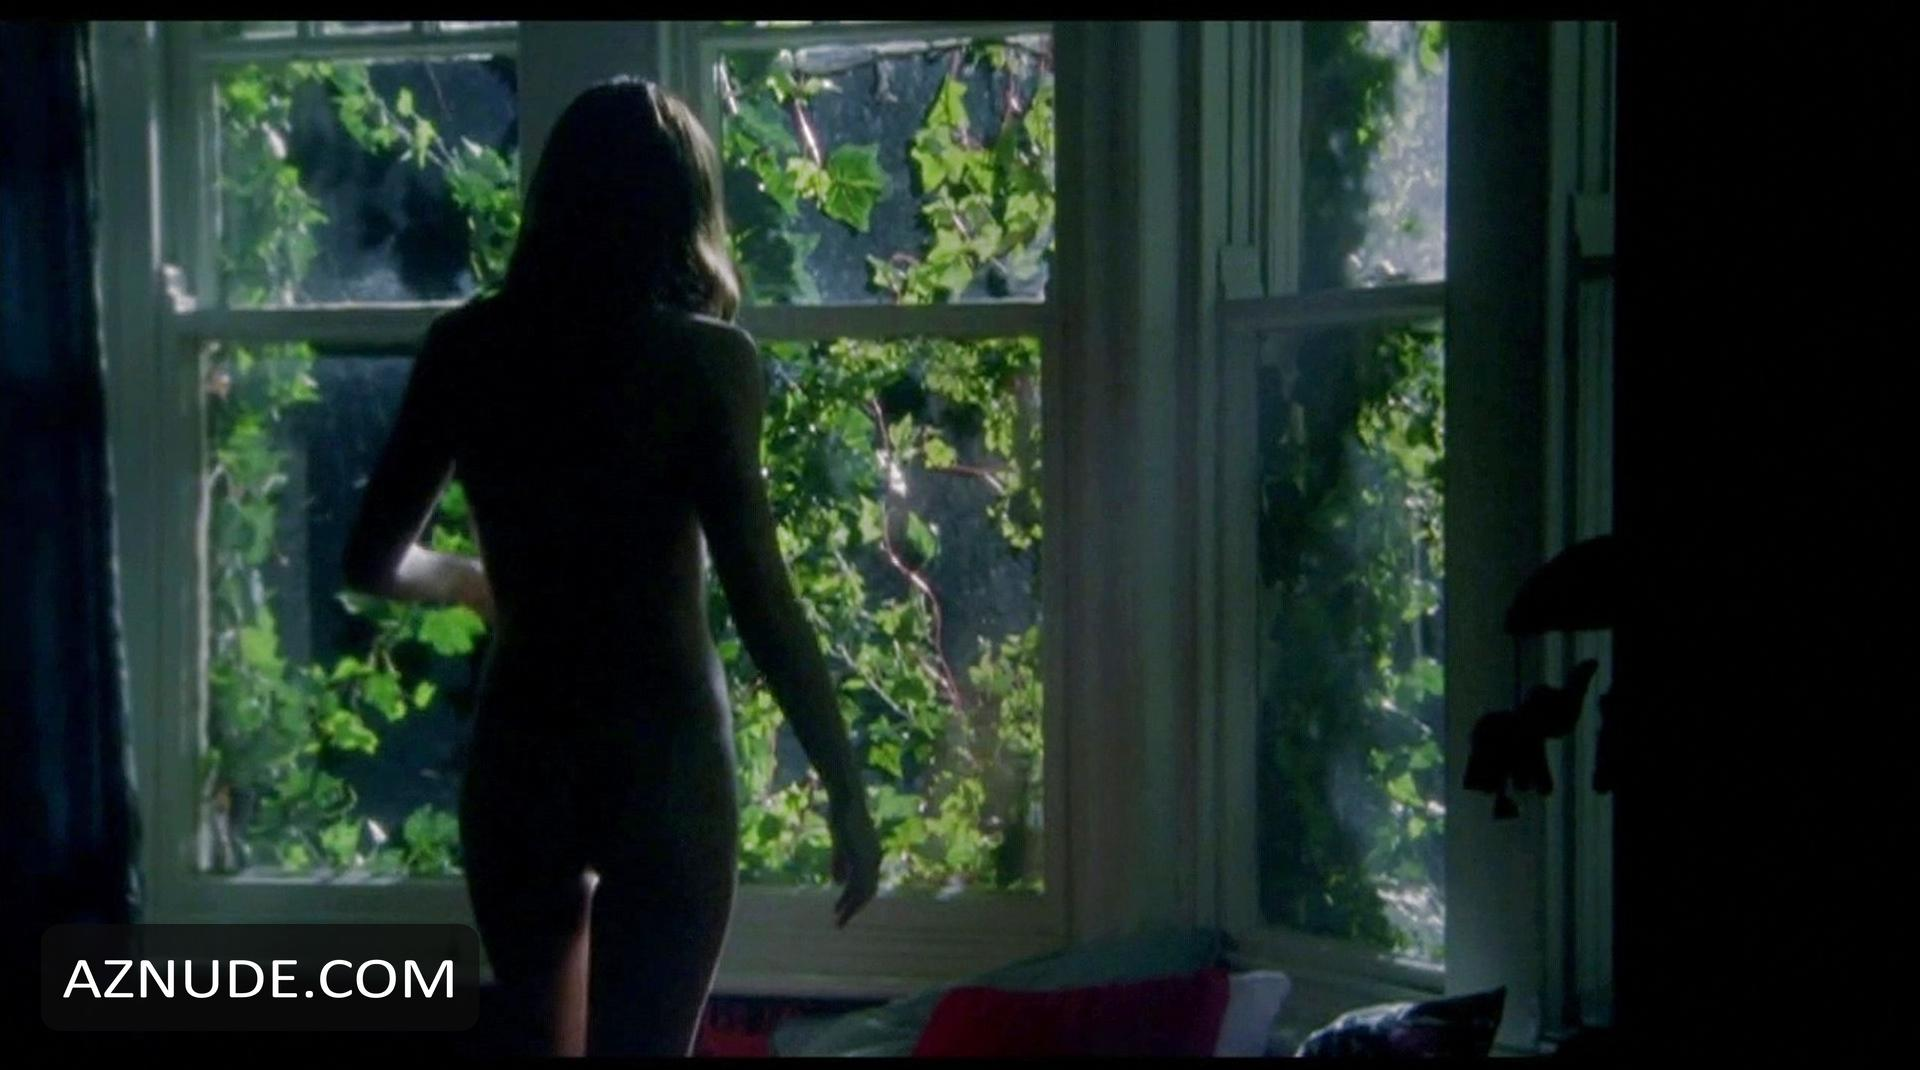 Emily blunt in arthur newman - 1 part 8